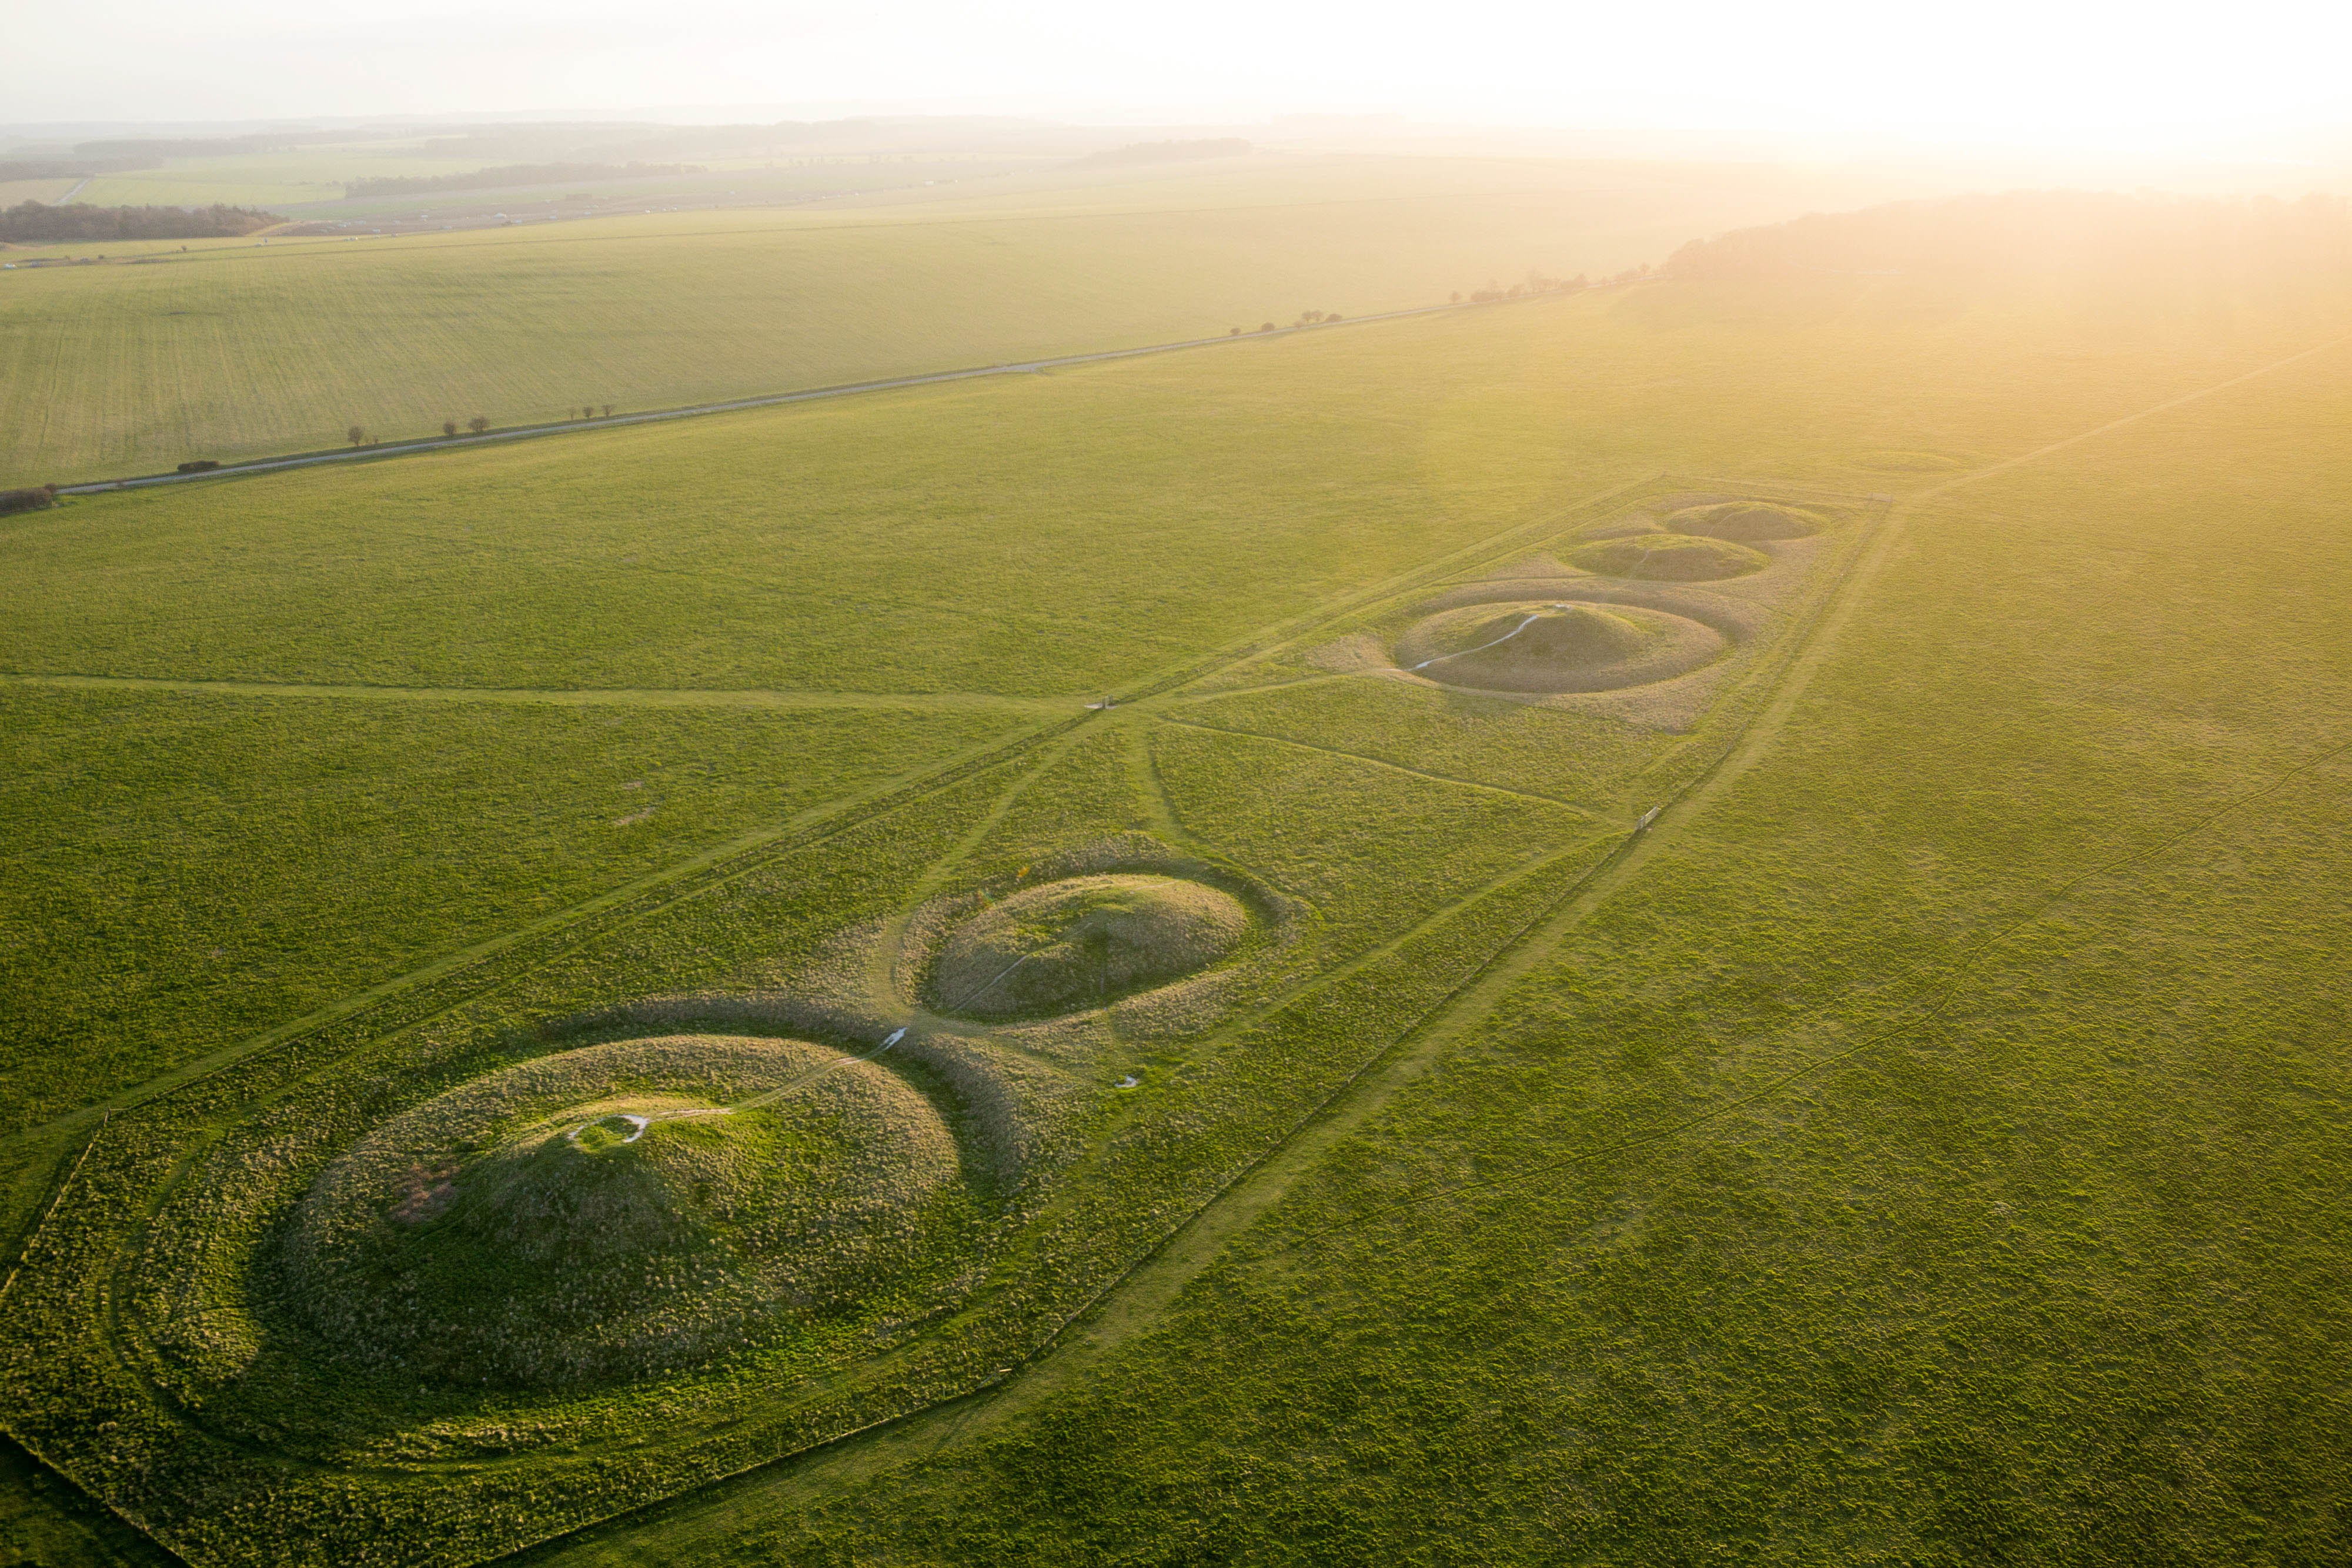 Green burial mounds mark the English landscape